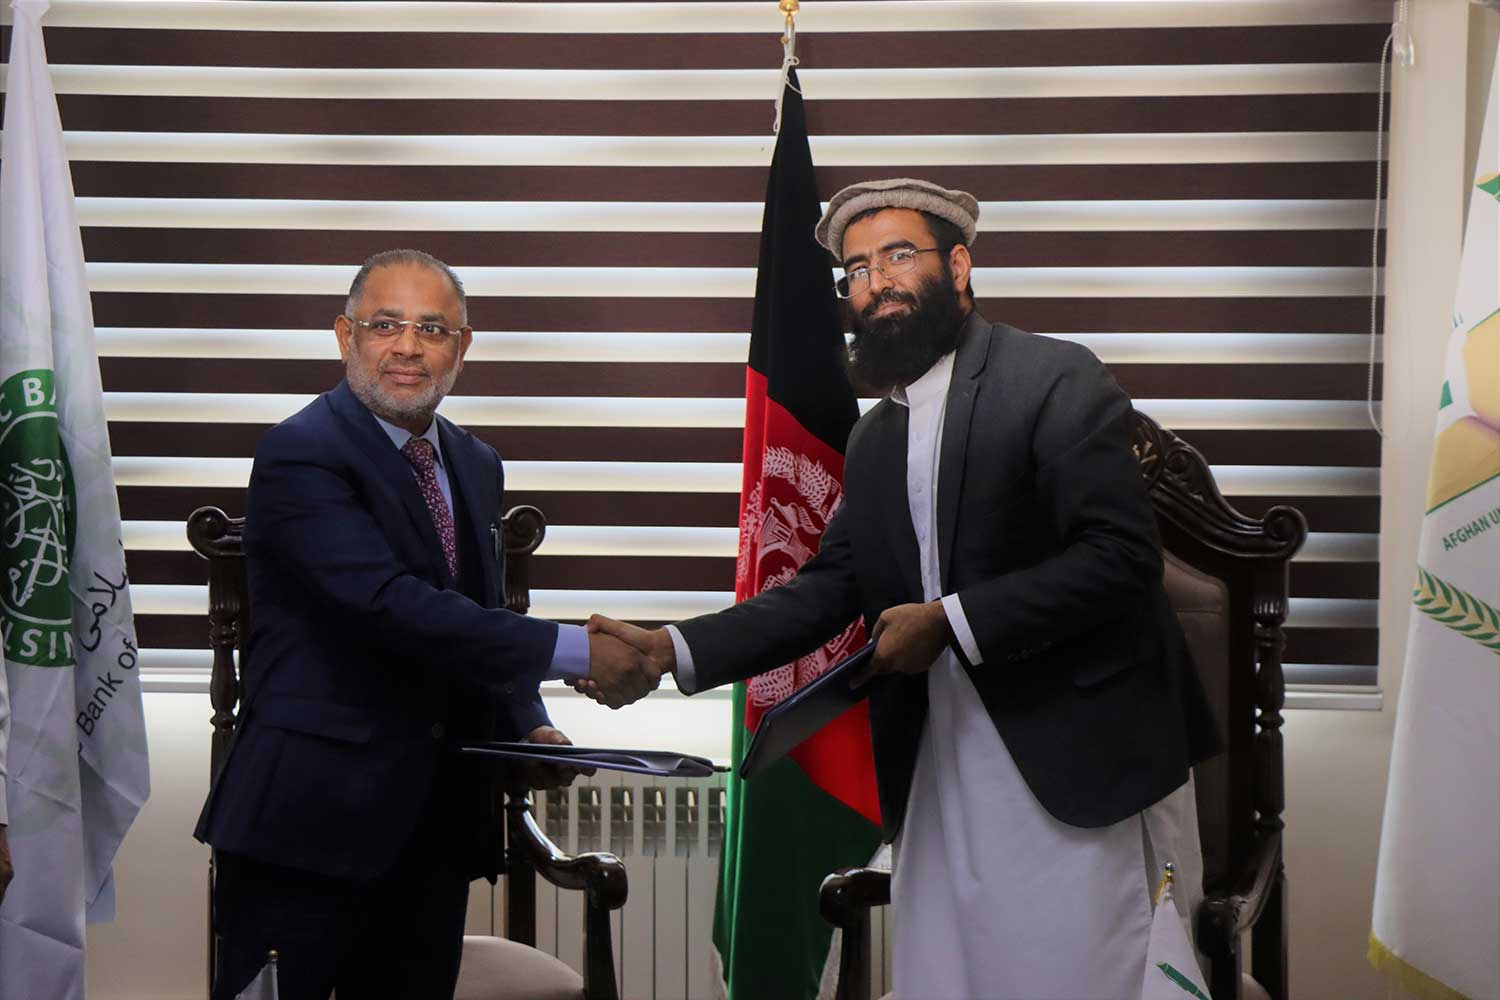 islamic-bank-and-afghan-university-understanding-mamo-اسلامک-بانک-افغانستان